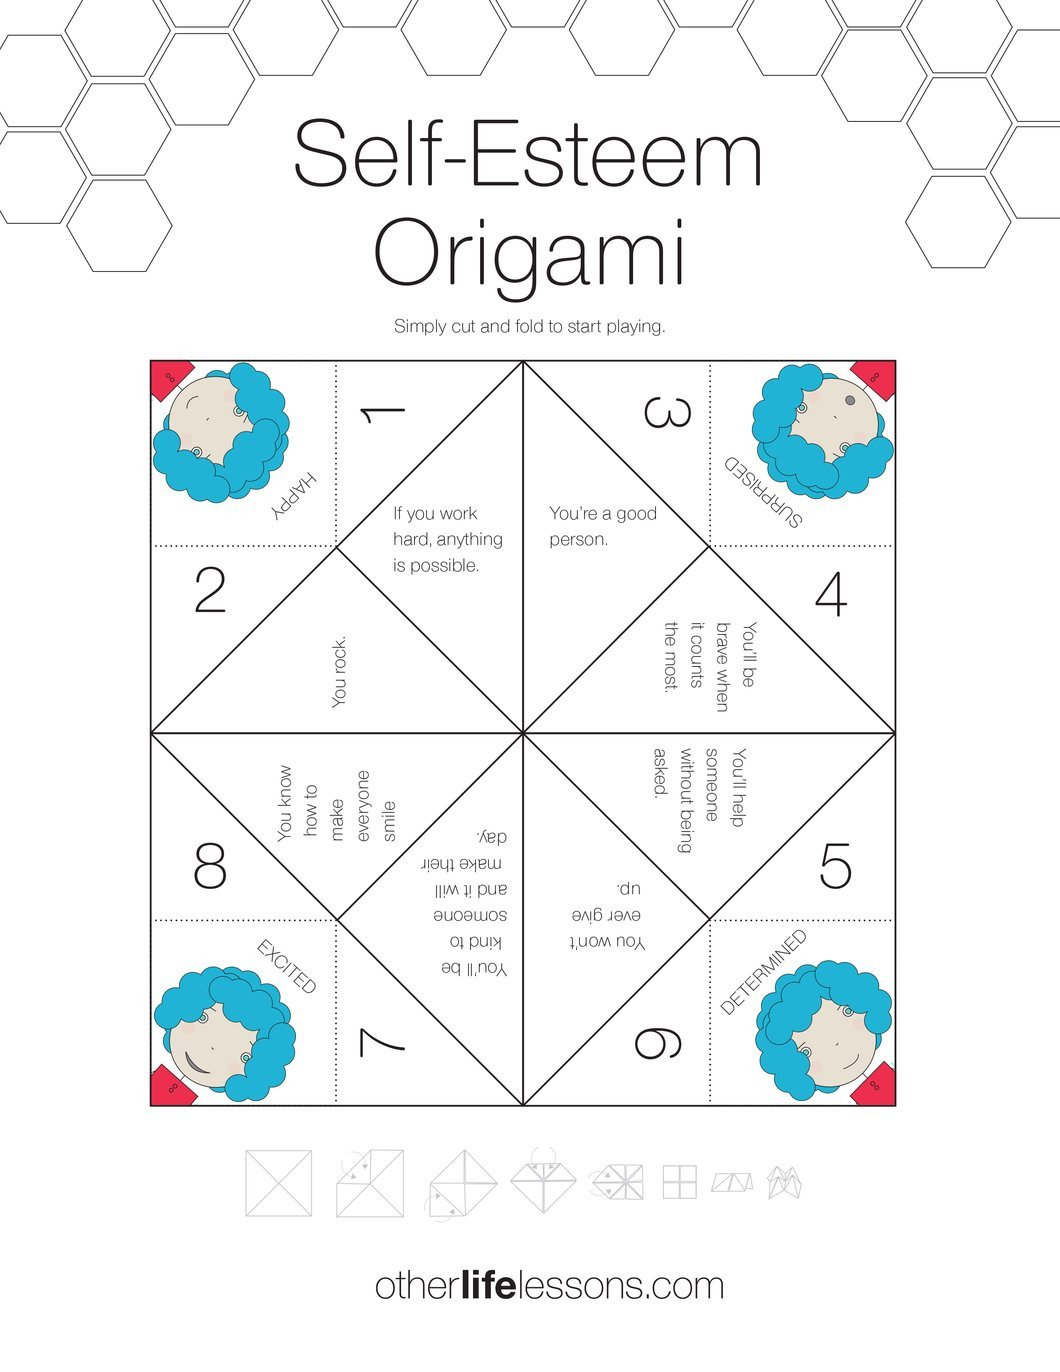 Self Respect Worksheets Self Esteem origami Game Free Printable – Other Life Lessons